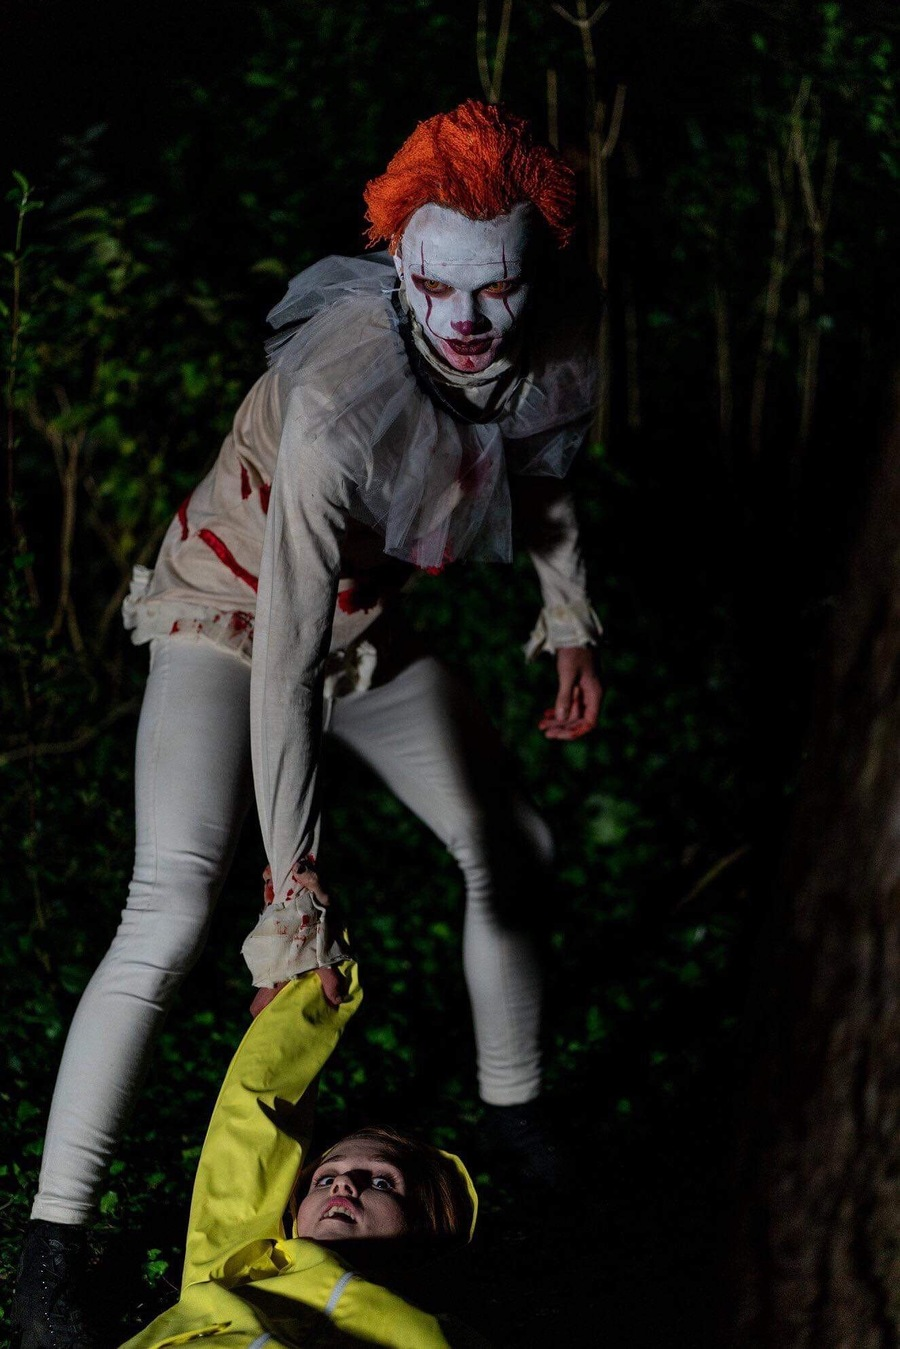 Come to the woods / Models Megan Annie, Models Tyler Hasdell, Makeup by Megan Annie / Uploaded 22nd September 2019 @ 10:31 AM